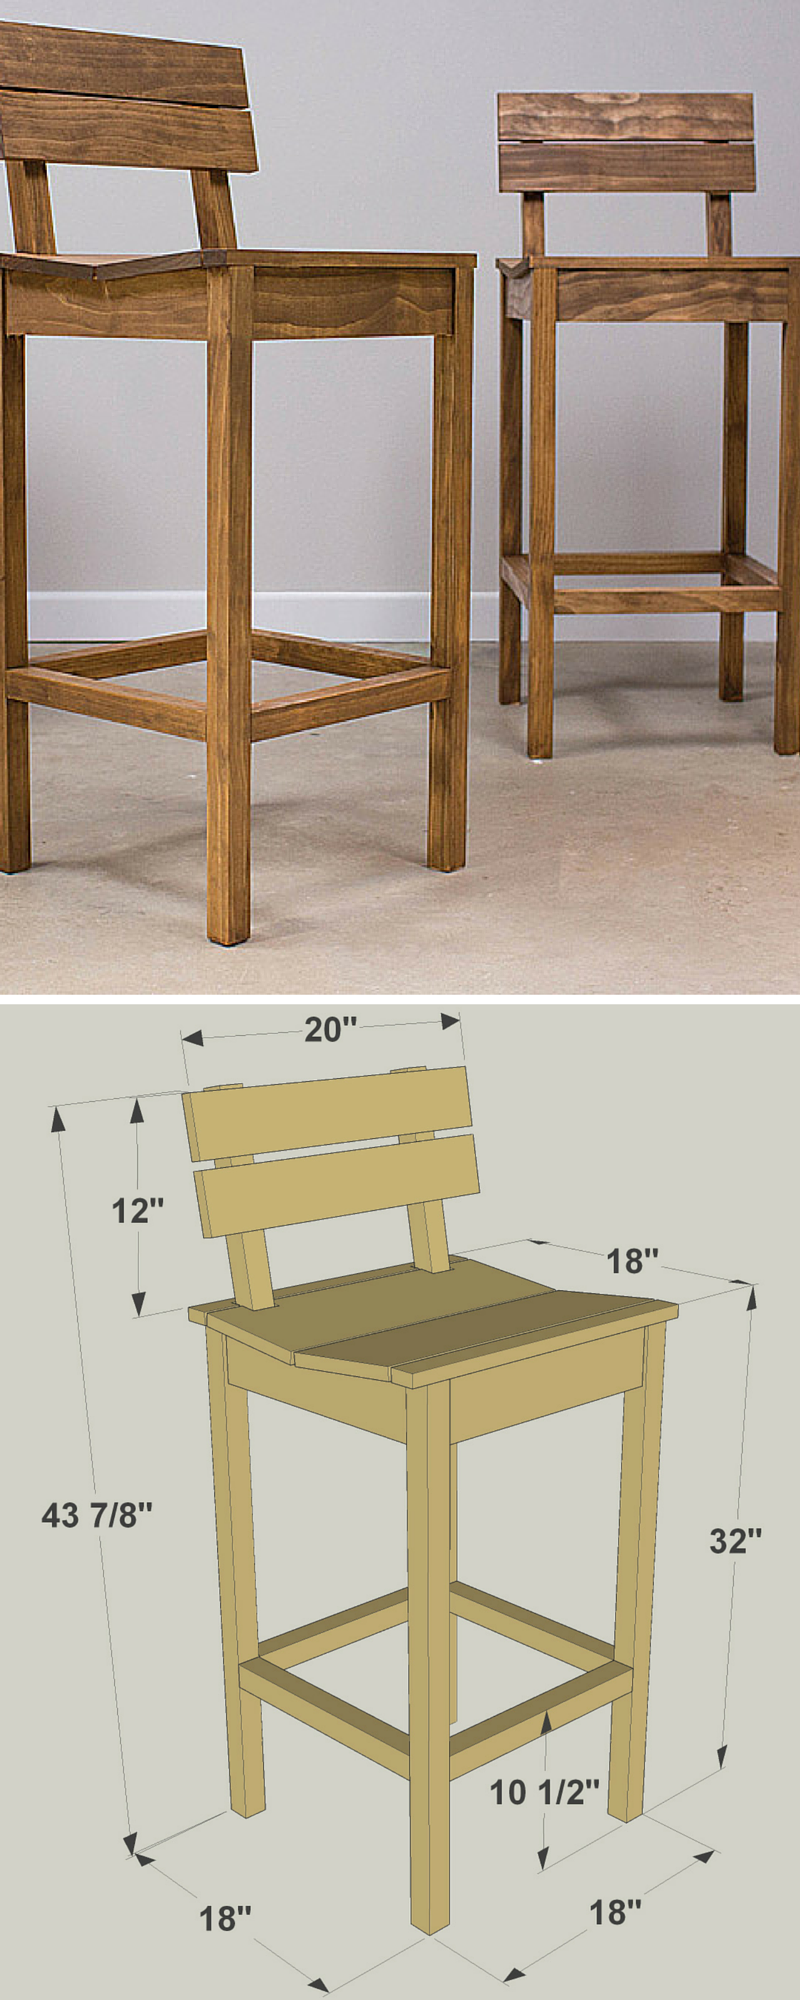 Teds Woodworking Plans Review Woodwork Pub Chairs